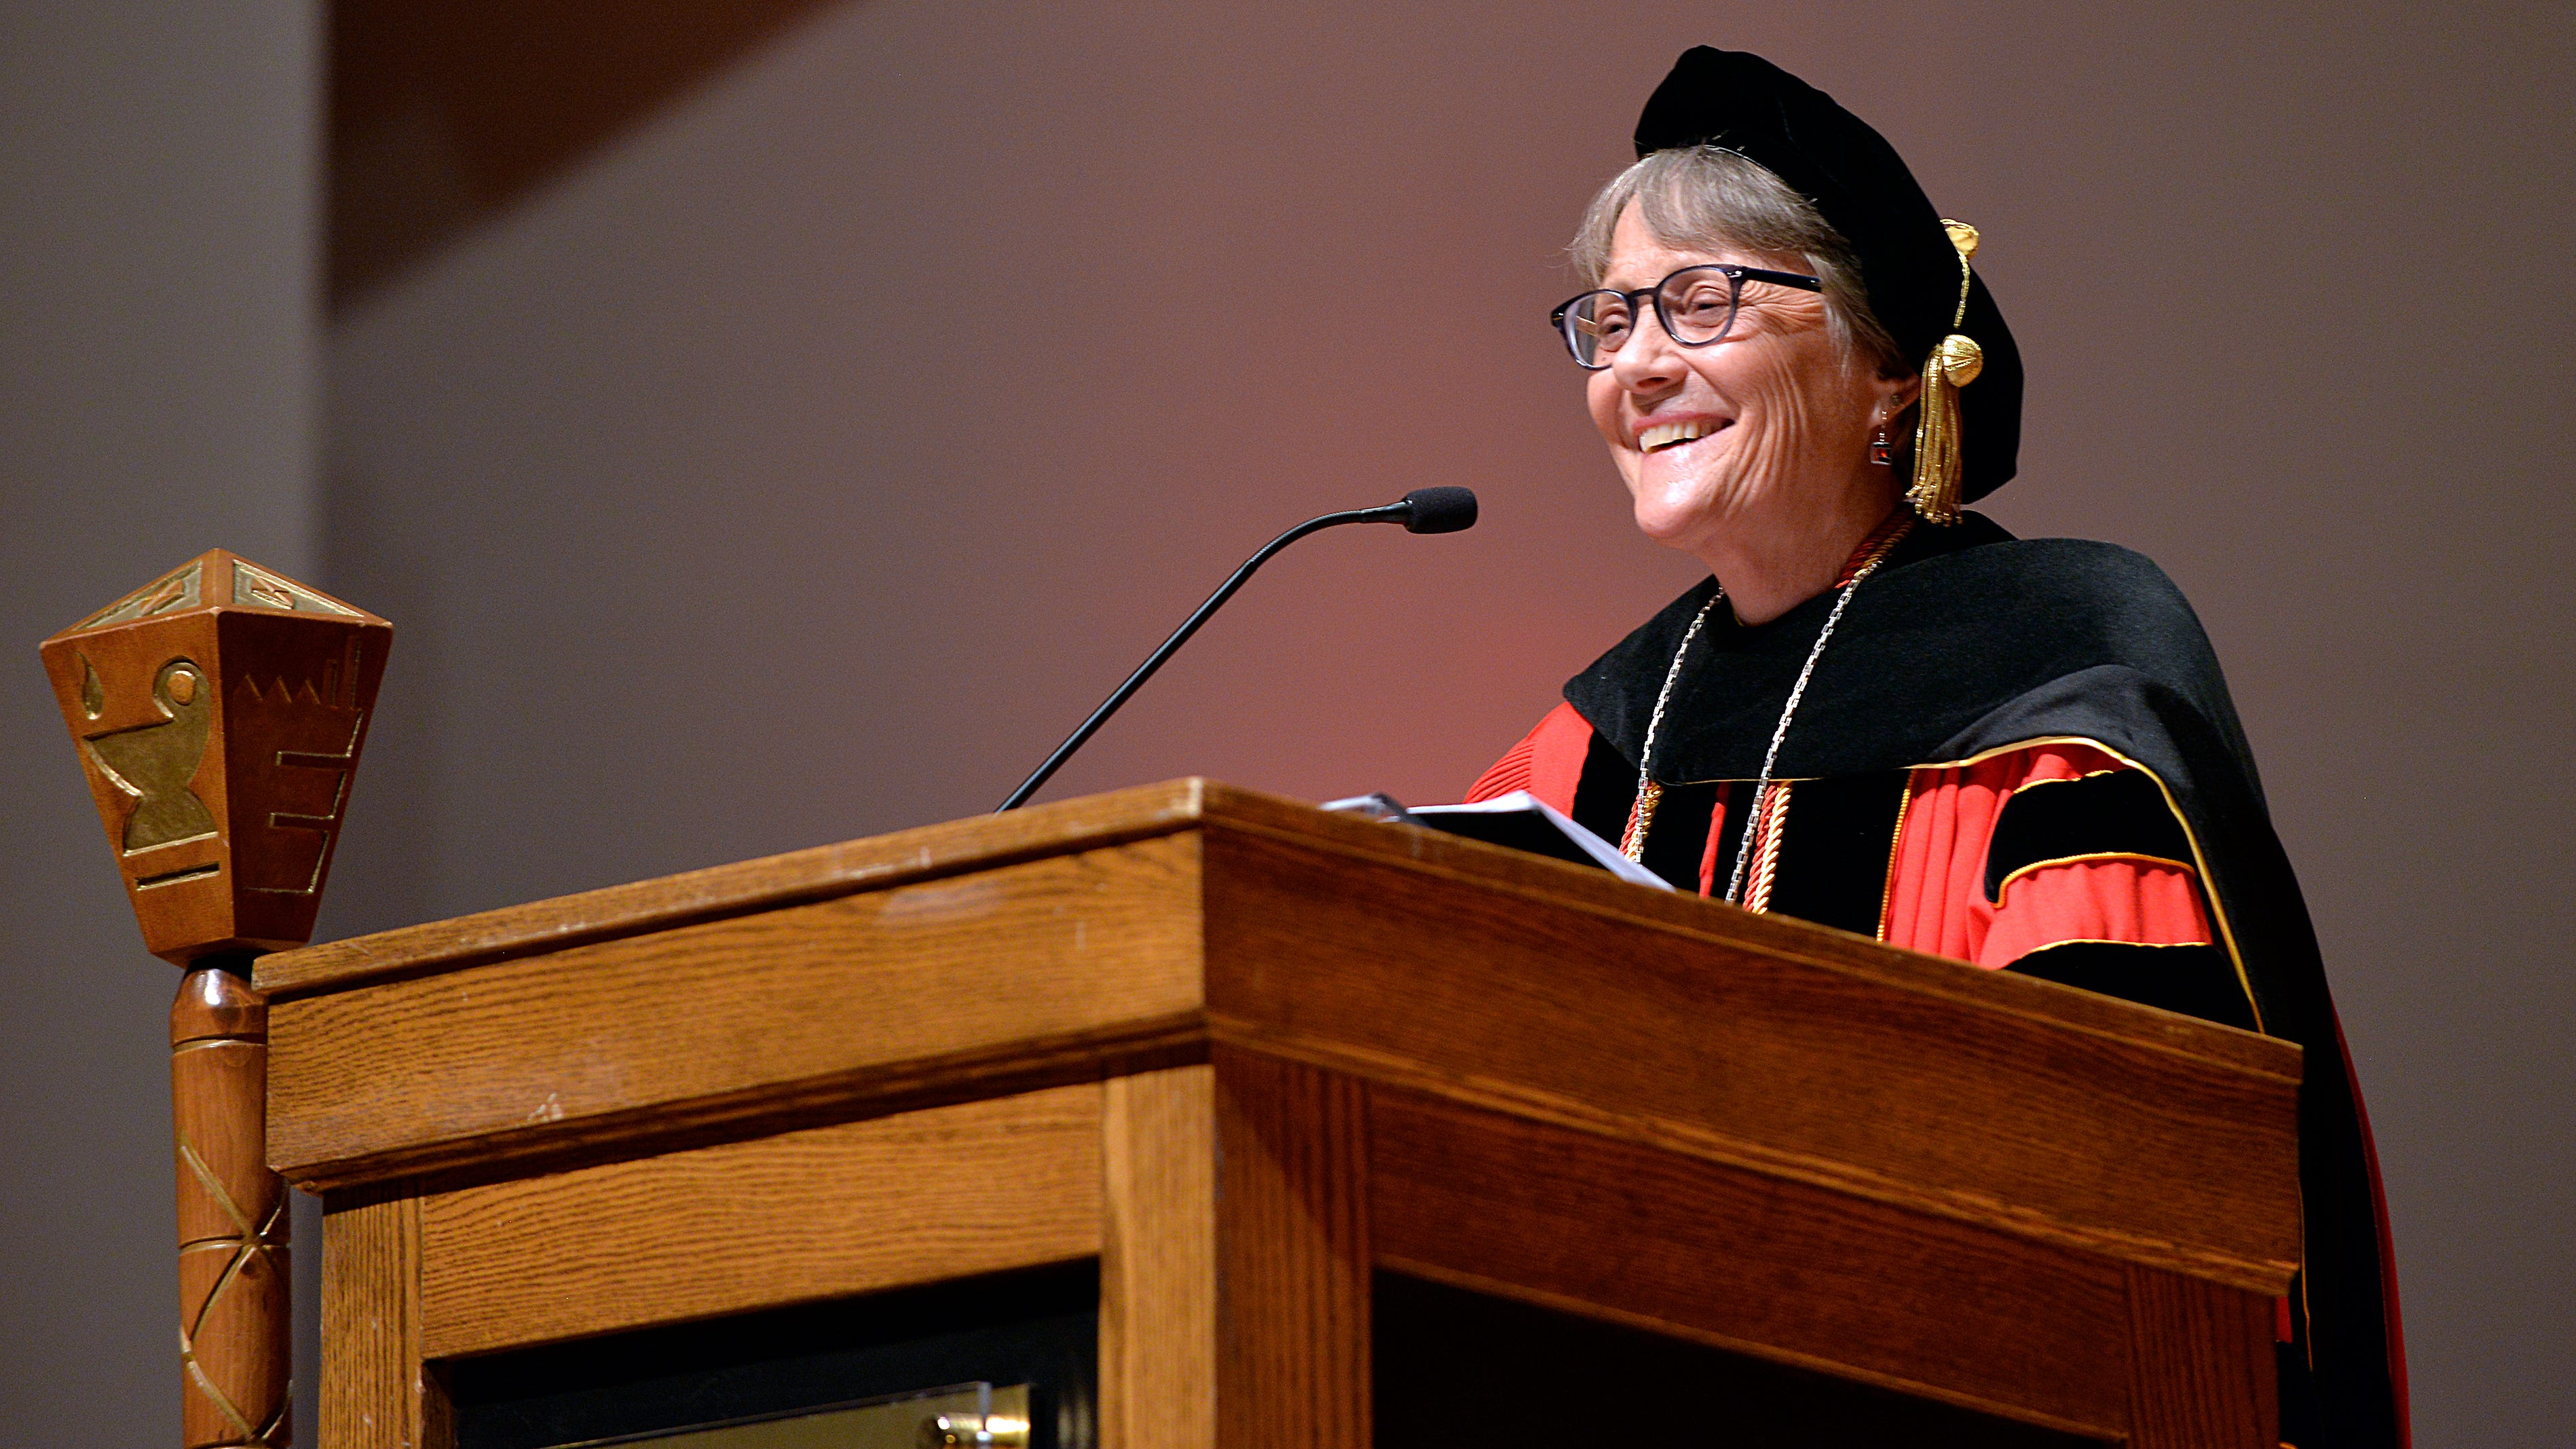 President Robbyn Wacker addresses the crowd during her inauguration ceremony at St. Cloud State University Monday.